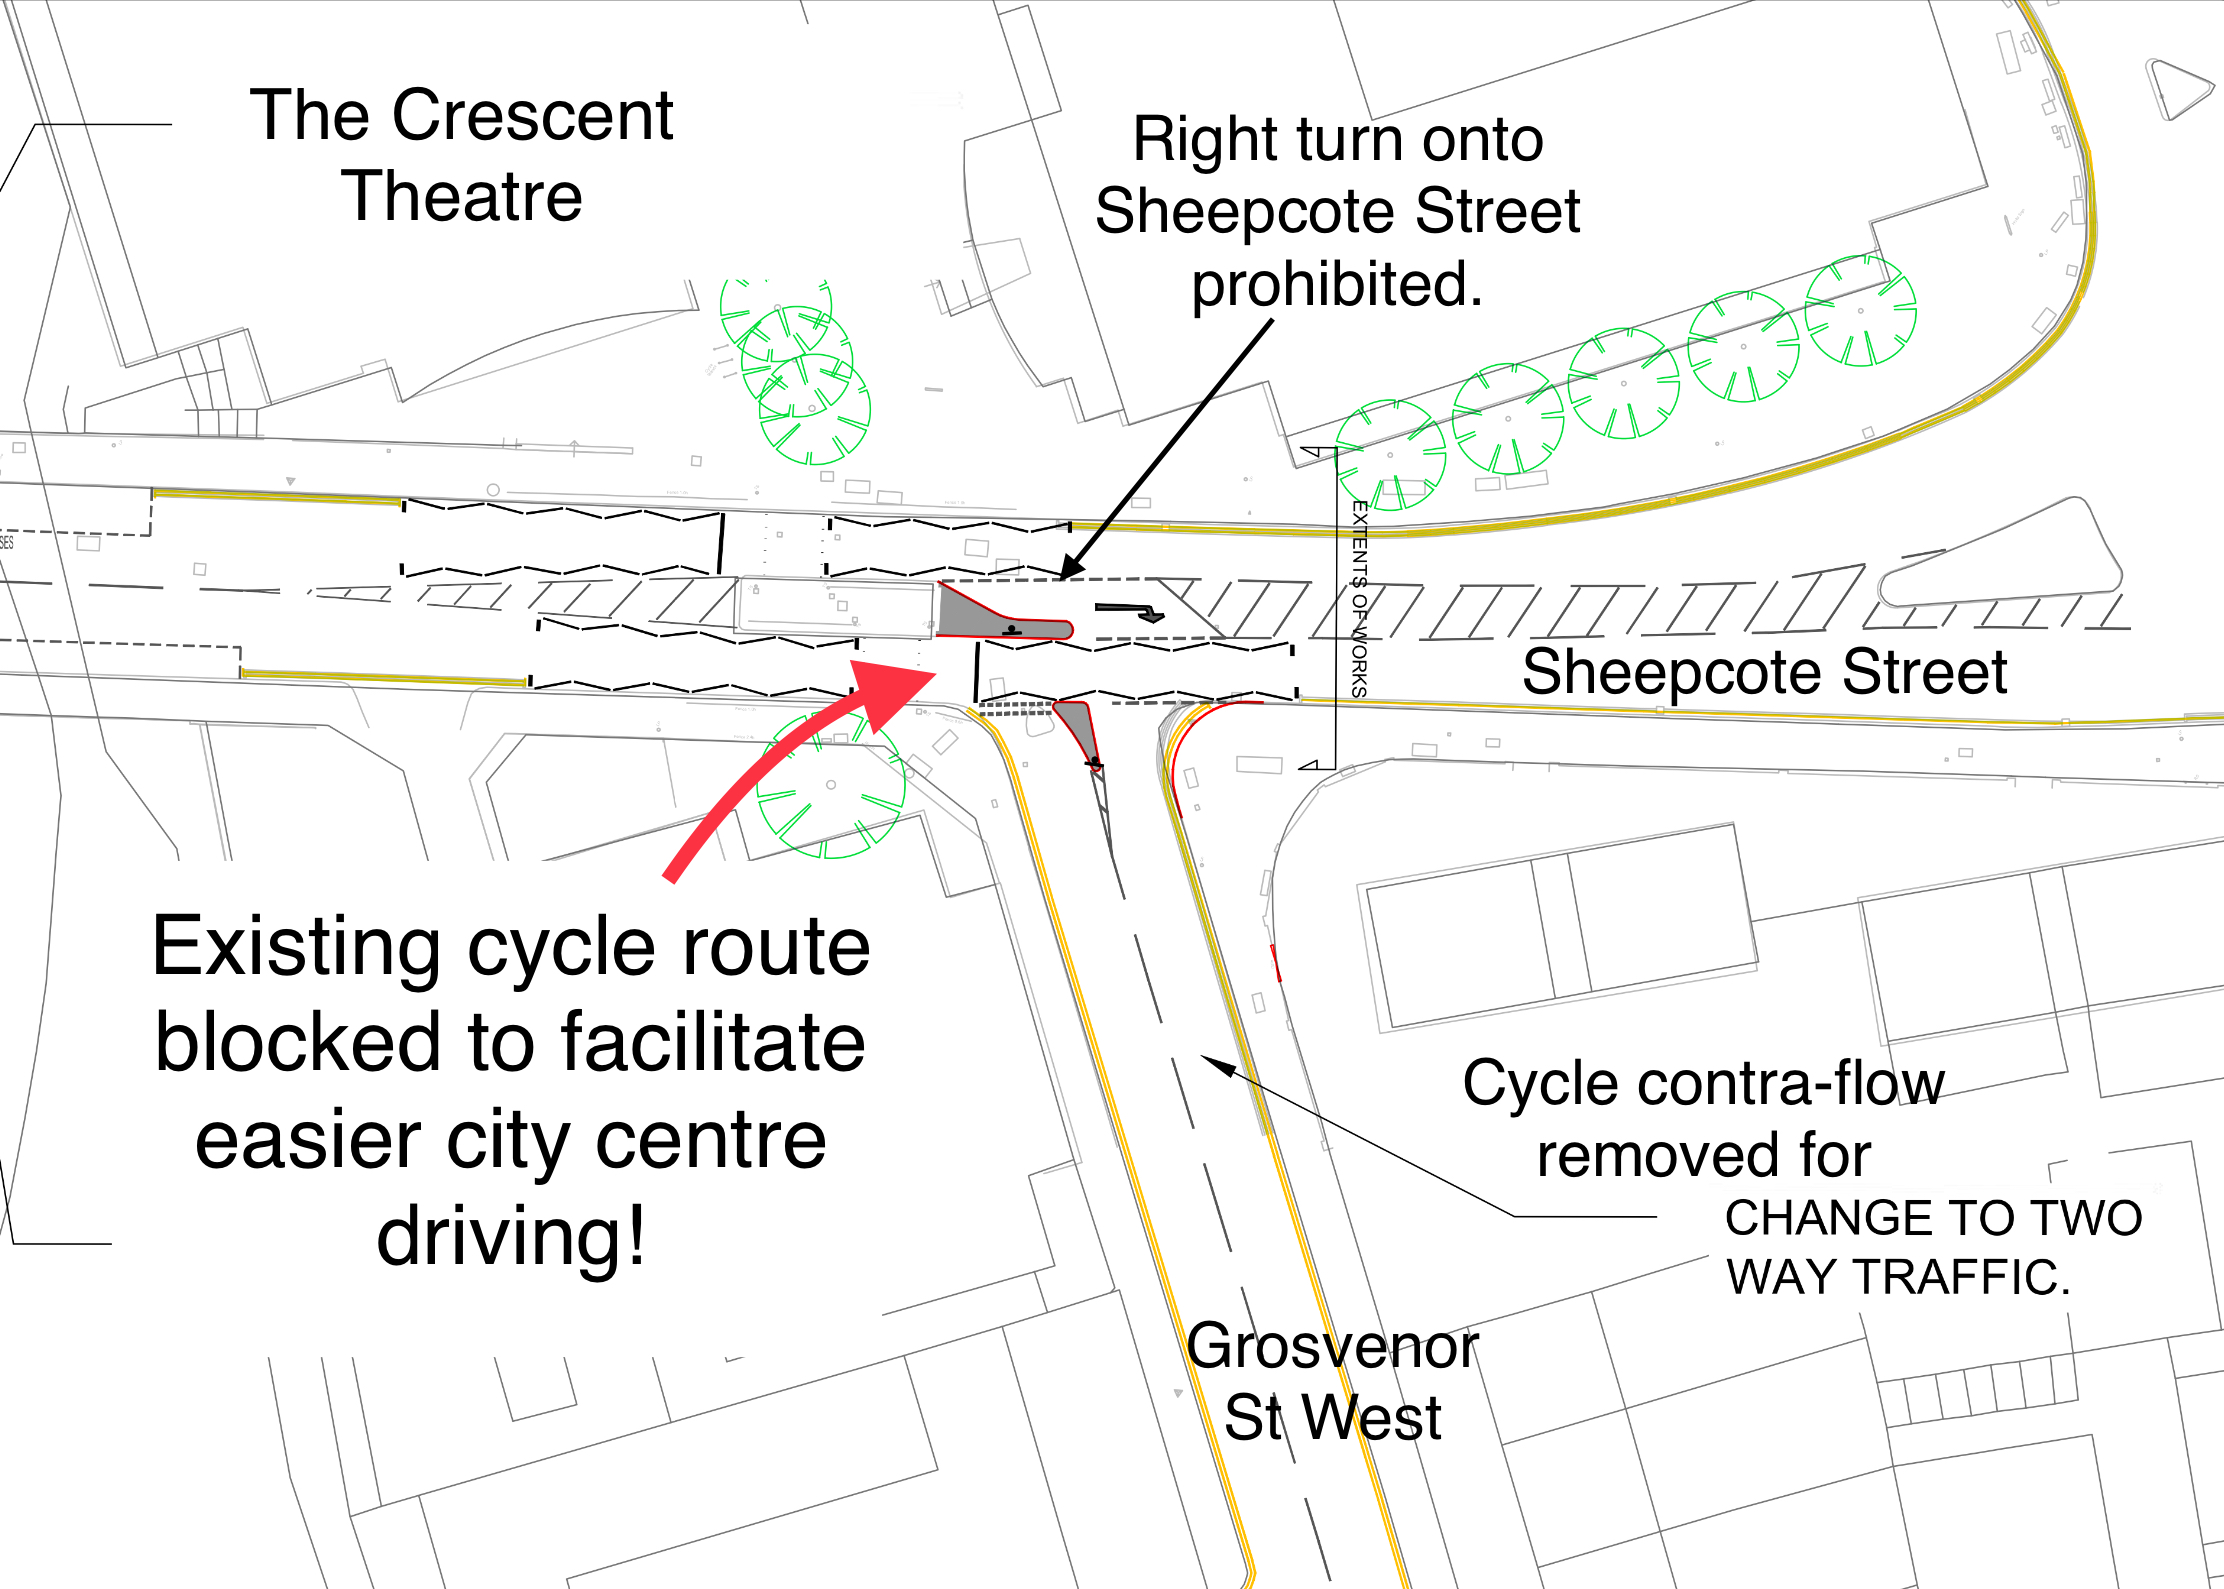 Proposed changes to Grosvenor St West cycle contra-flow